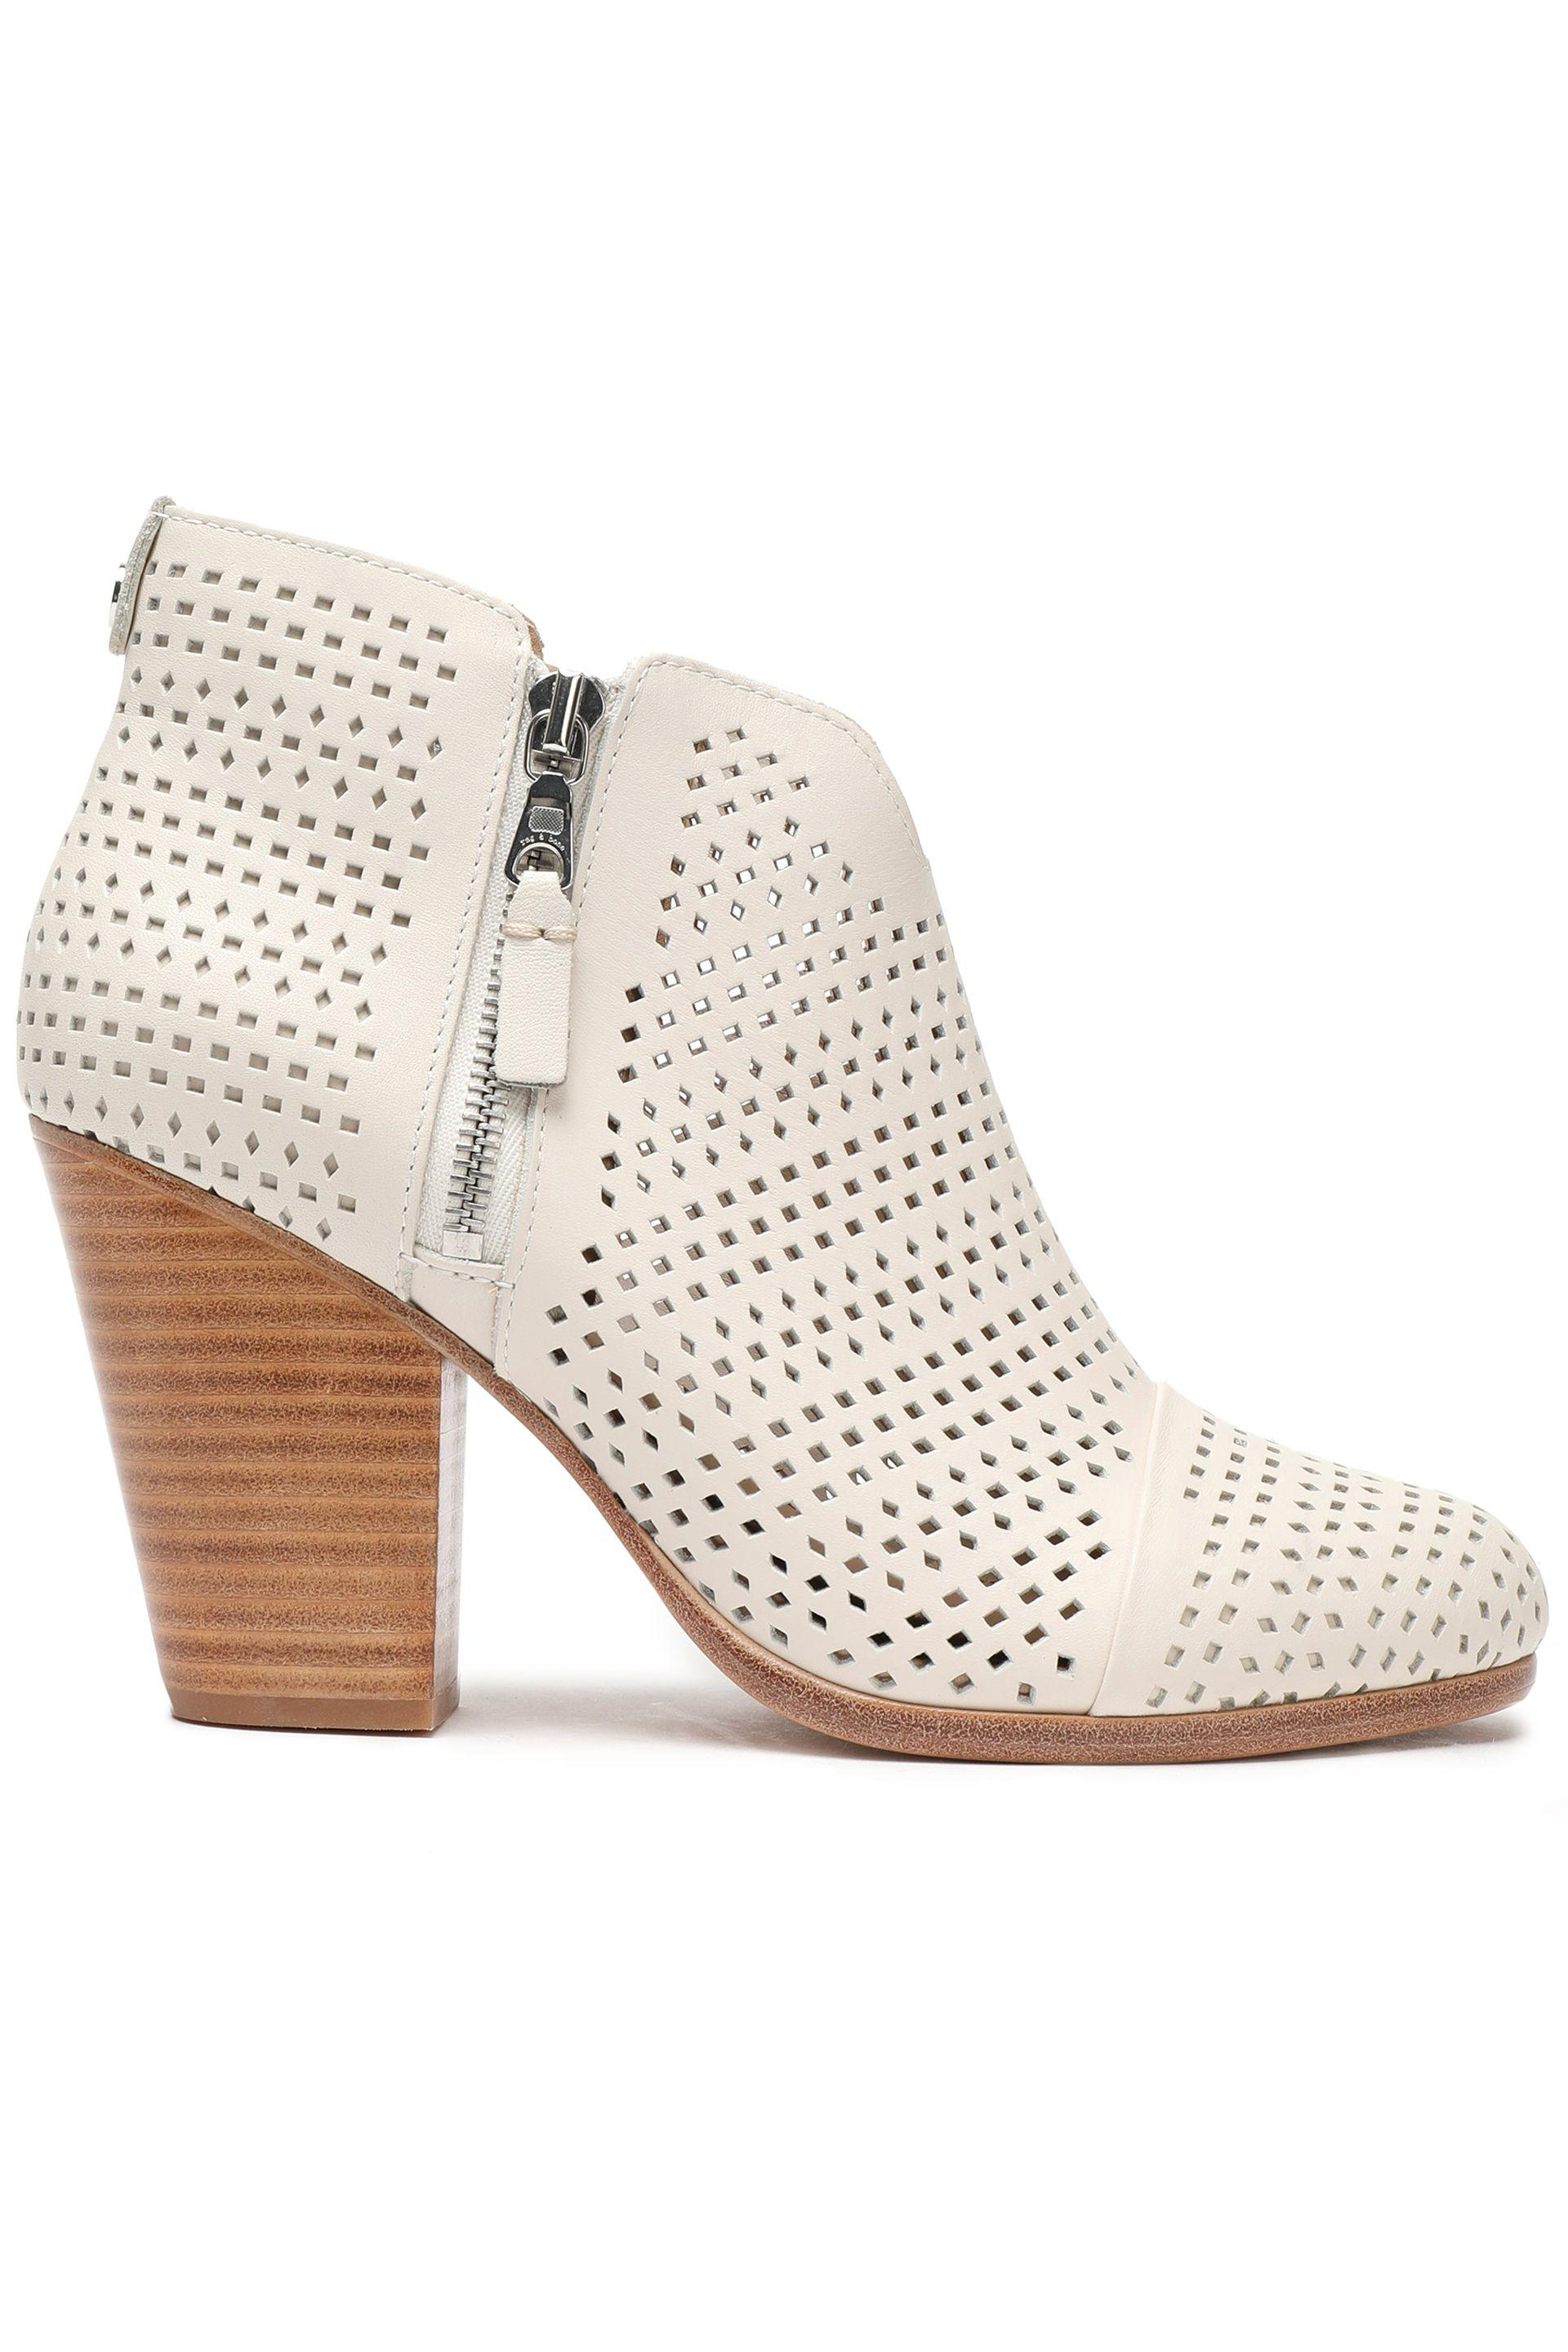 discount visa payment Rag & Bone Leather Laser Cut Ankle Boots discount new arrival eHLZeS0Rs